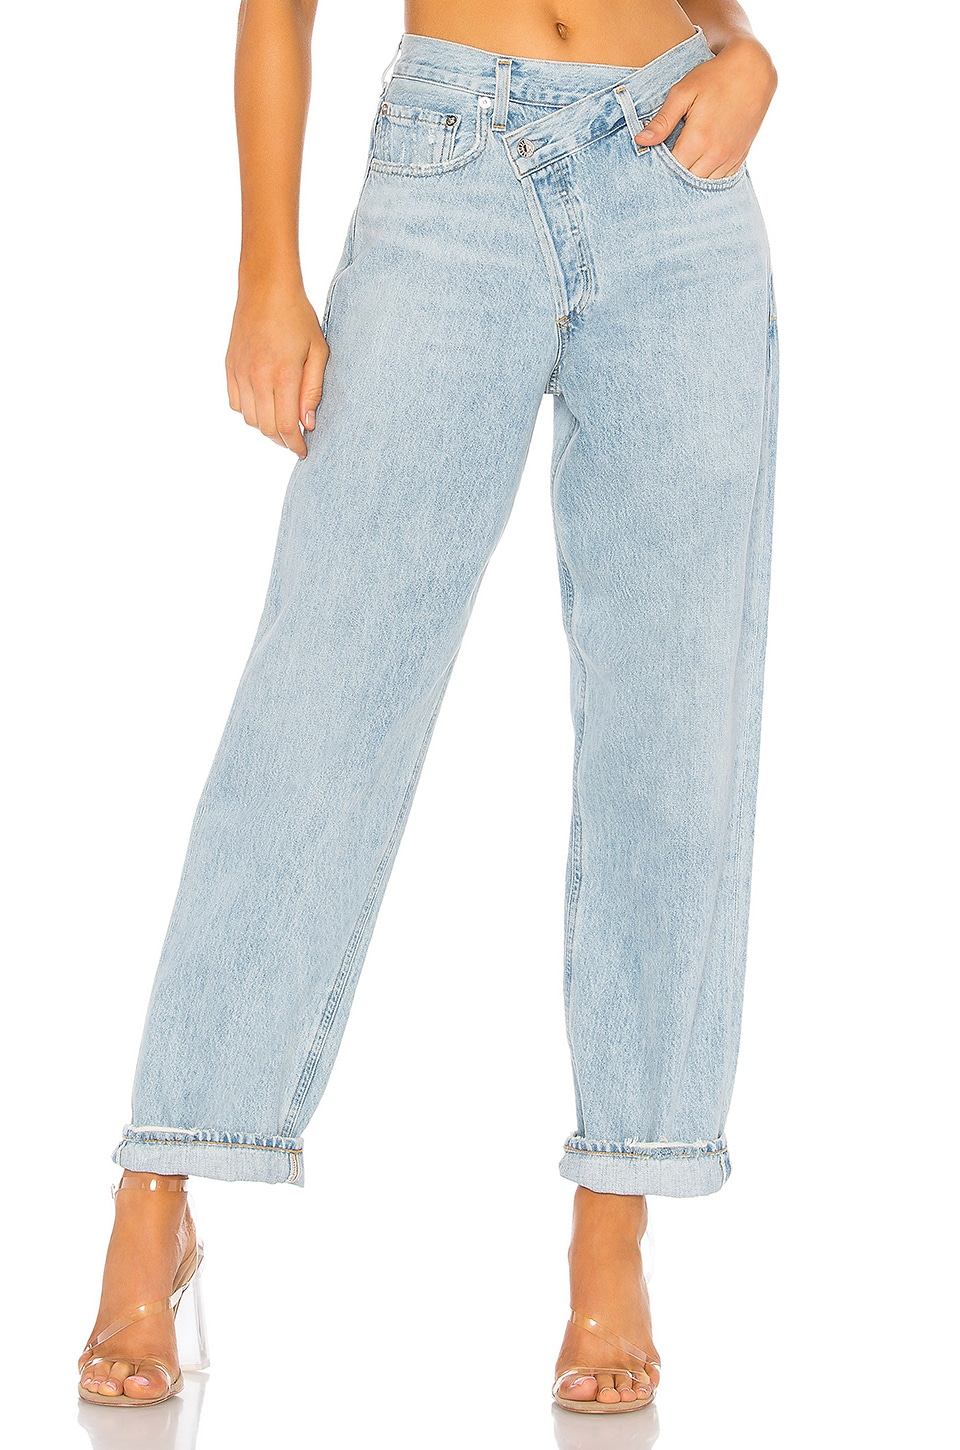 Criss Cross Upsized Jean             AGOLDE                                                                                                       CA$ 254.00 8